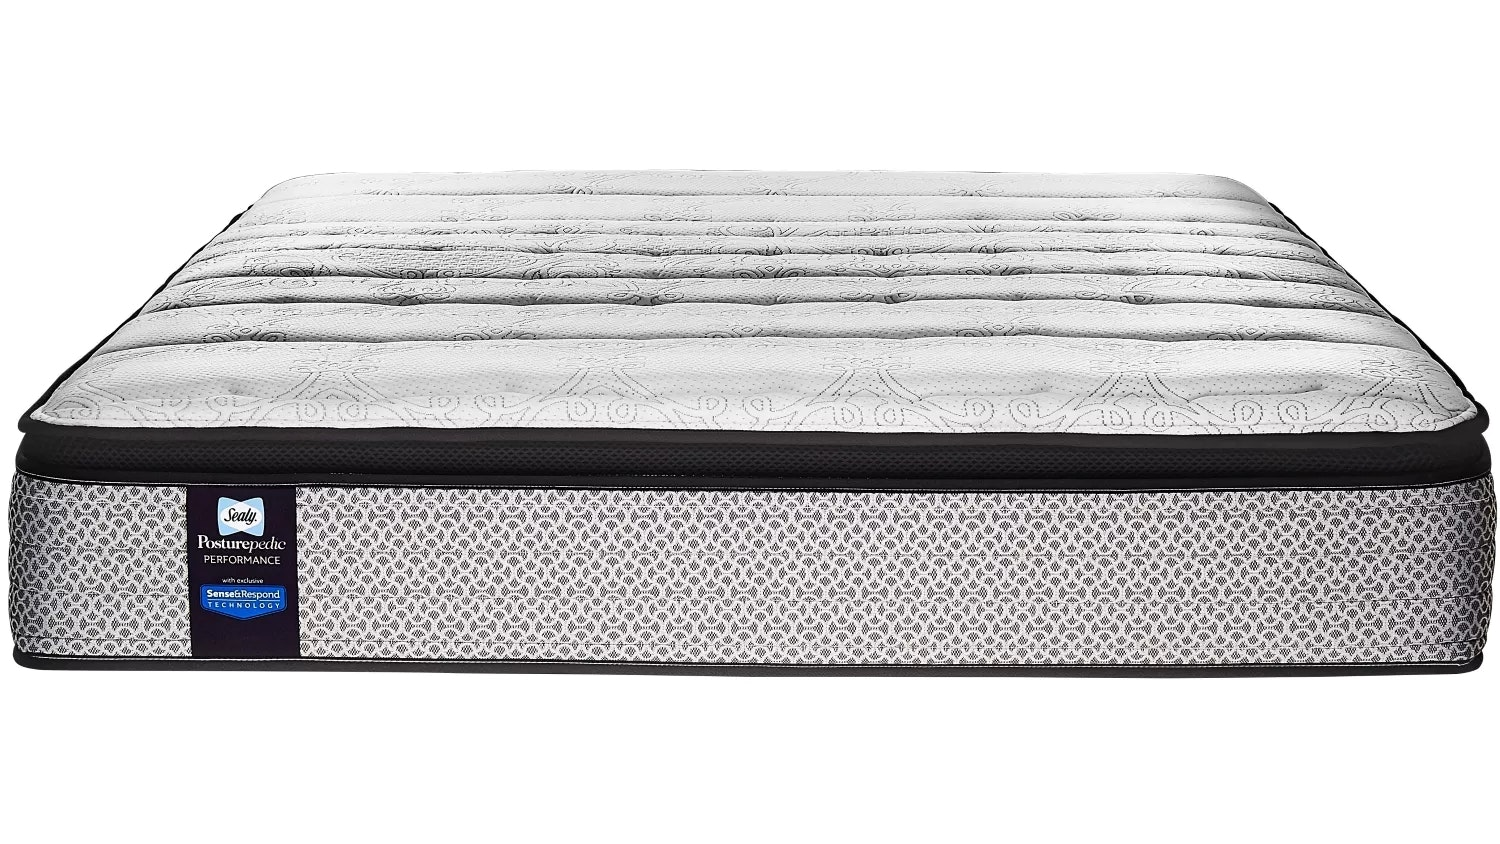 Sealy Posturepedic Performance Fiori Cushion Firm Mattress